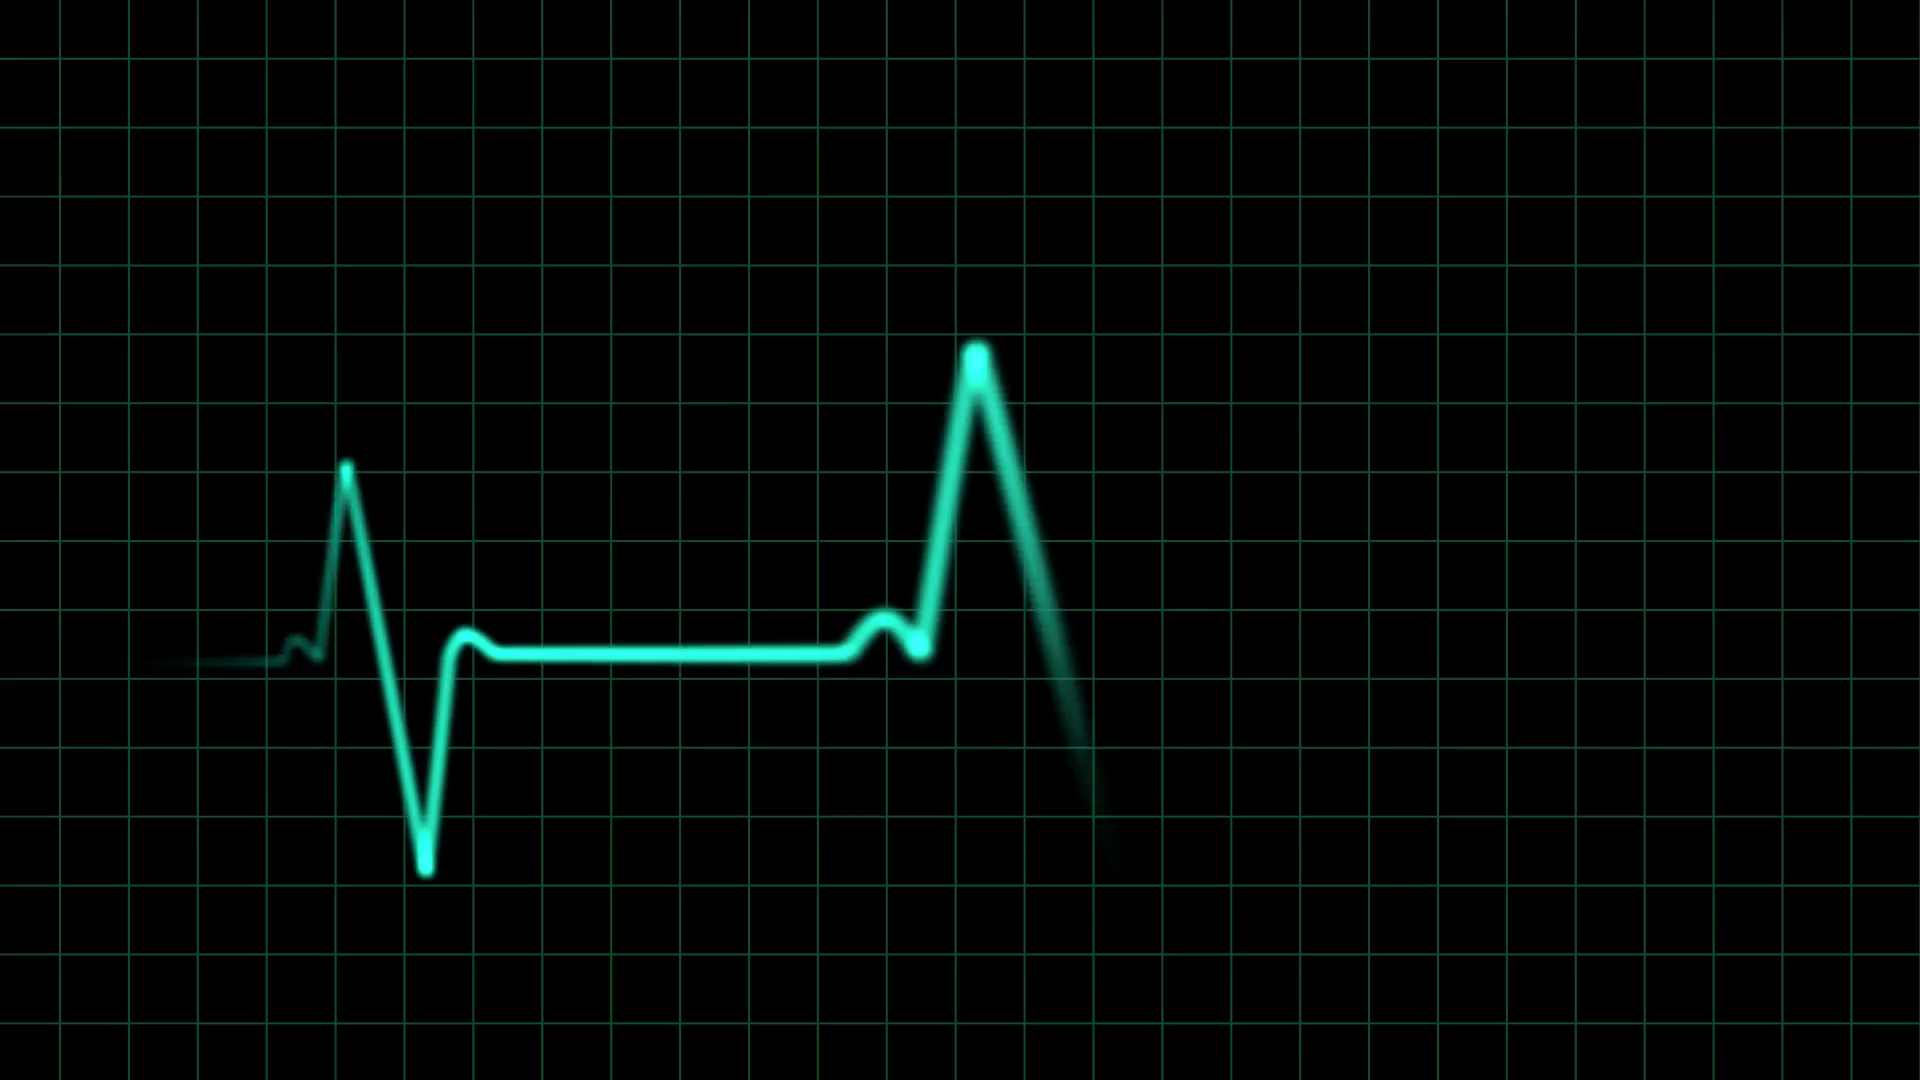 ekg-heartbeat-monitor-animation_vk7bajhz__F0000